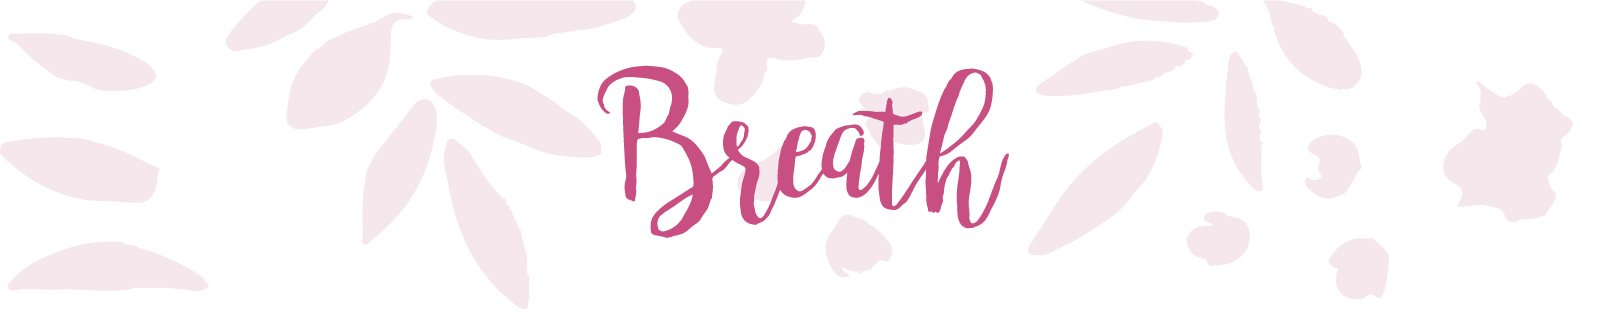 Breath header.jpg